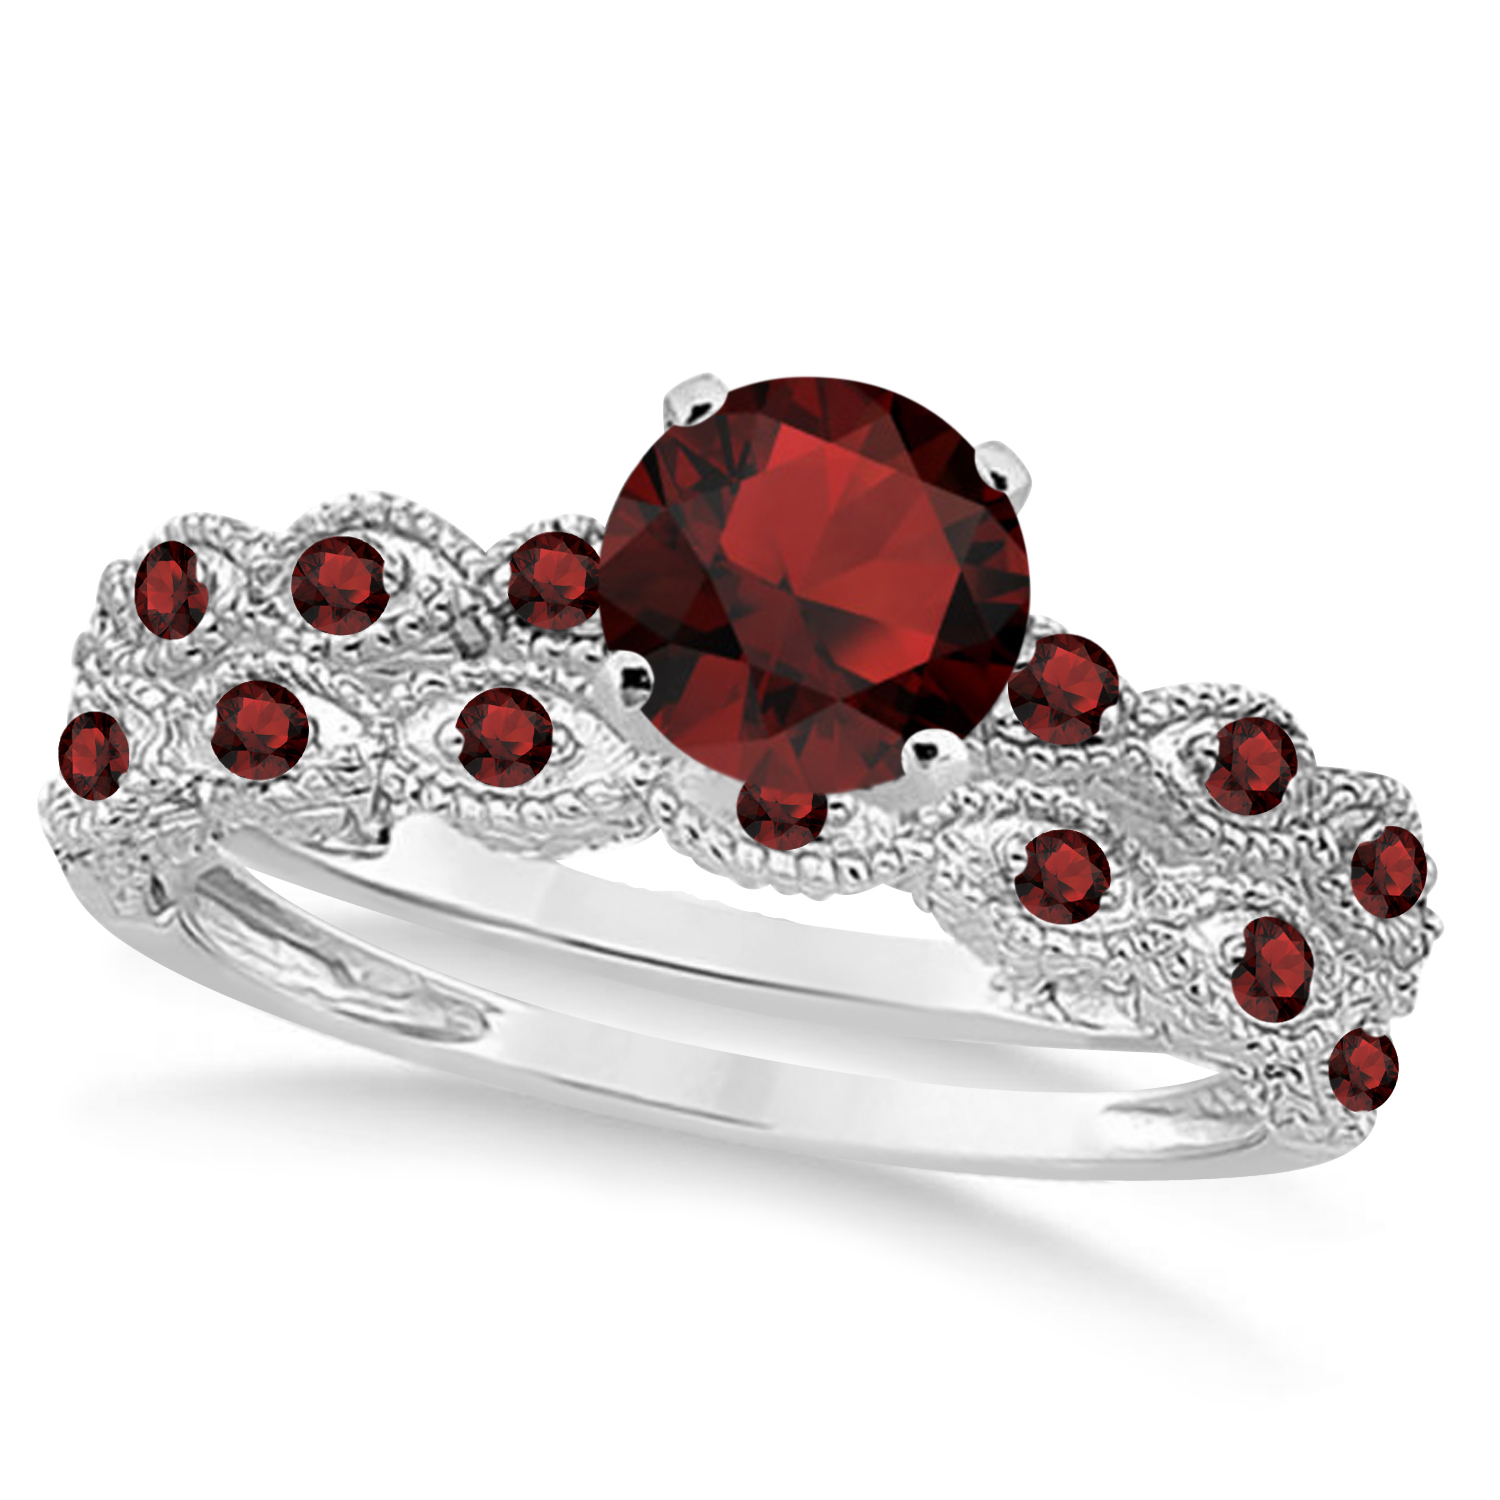 Vintage Garnet Engagement Ring Bridal Set Palladium 1.36ct